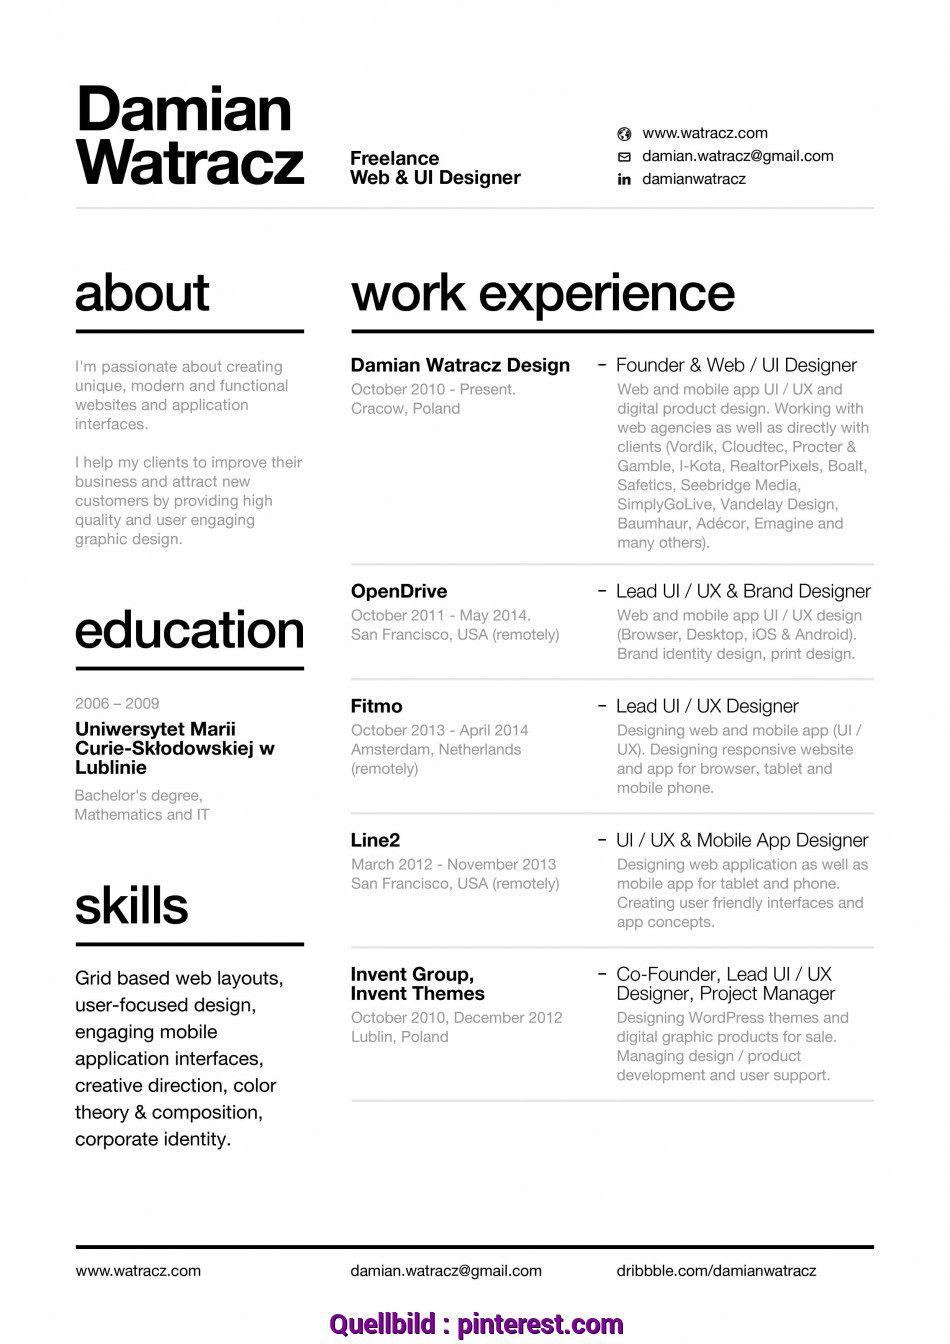 Briliant Resume With Nice Layout & Easy To Read Font, Design, Pinterest